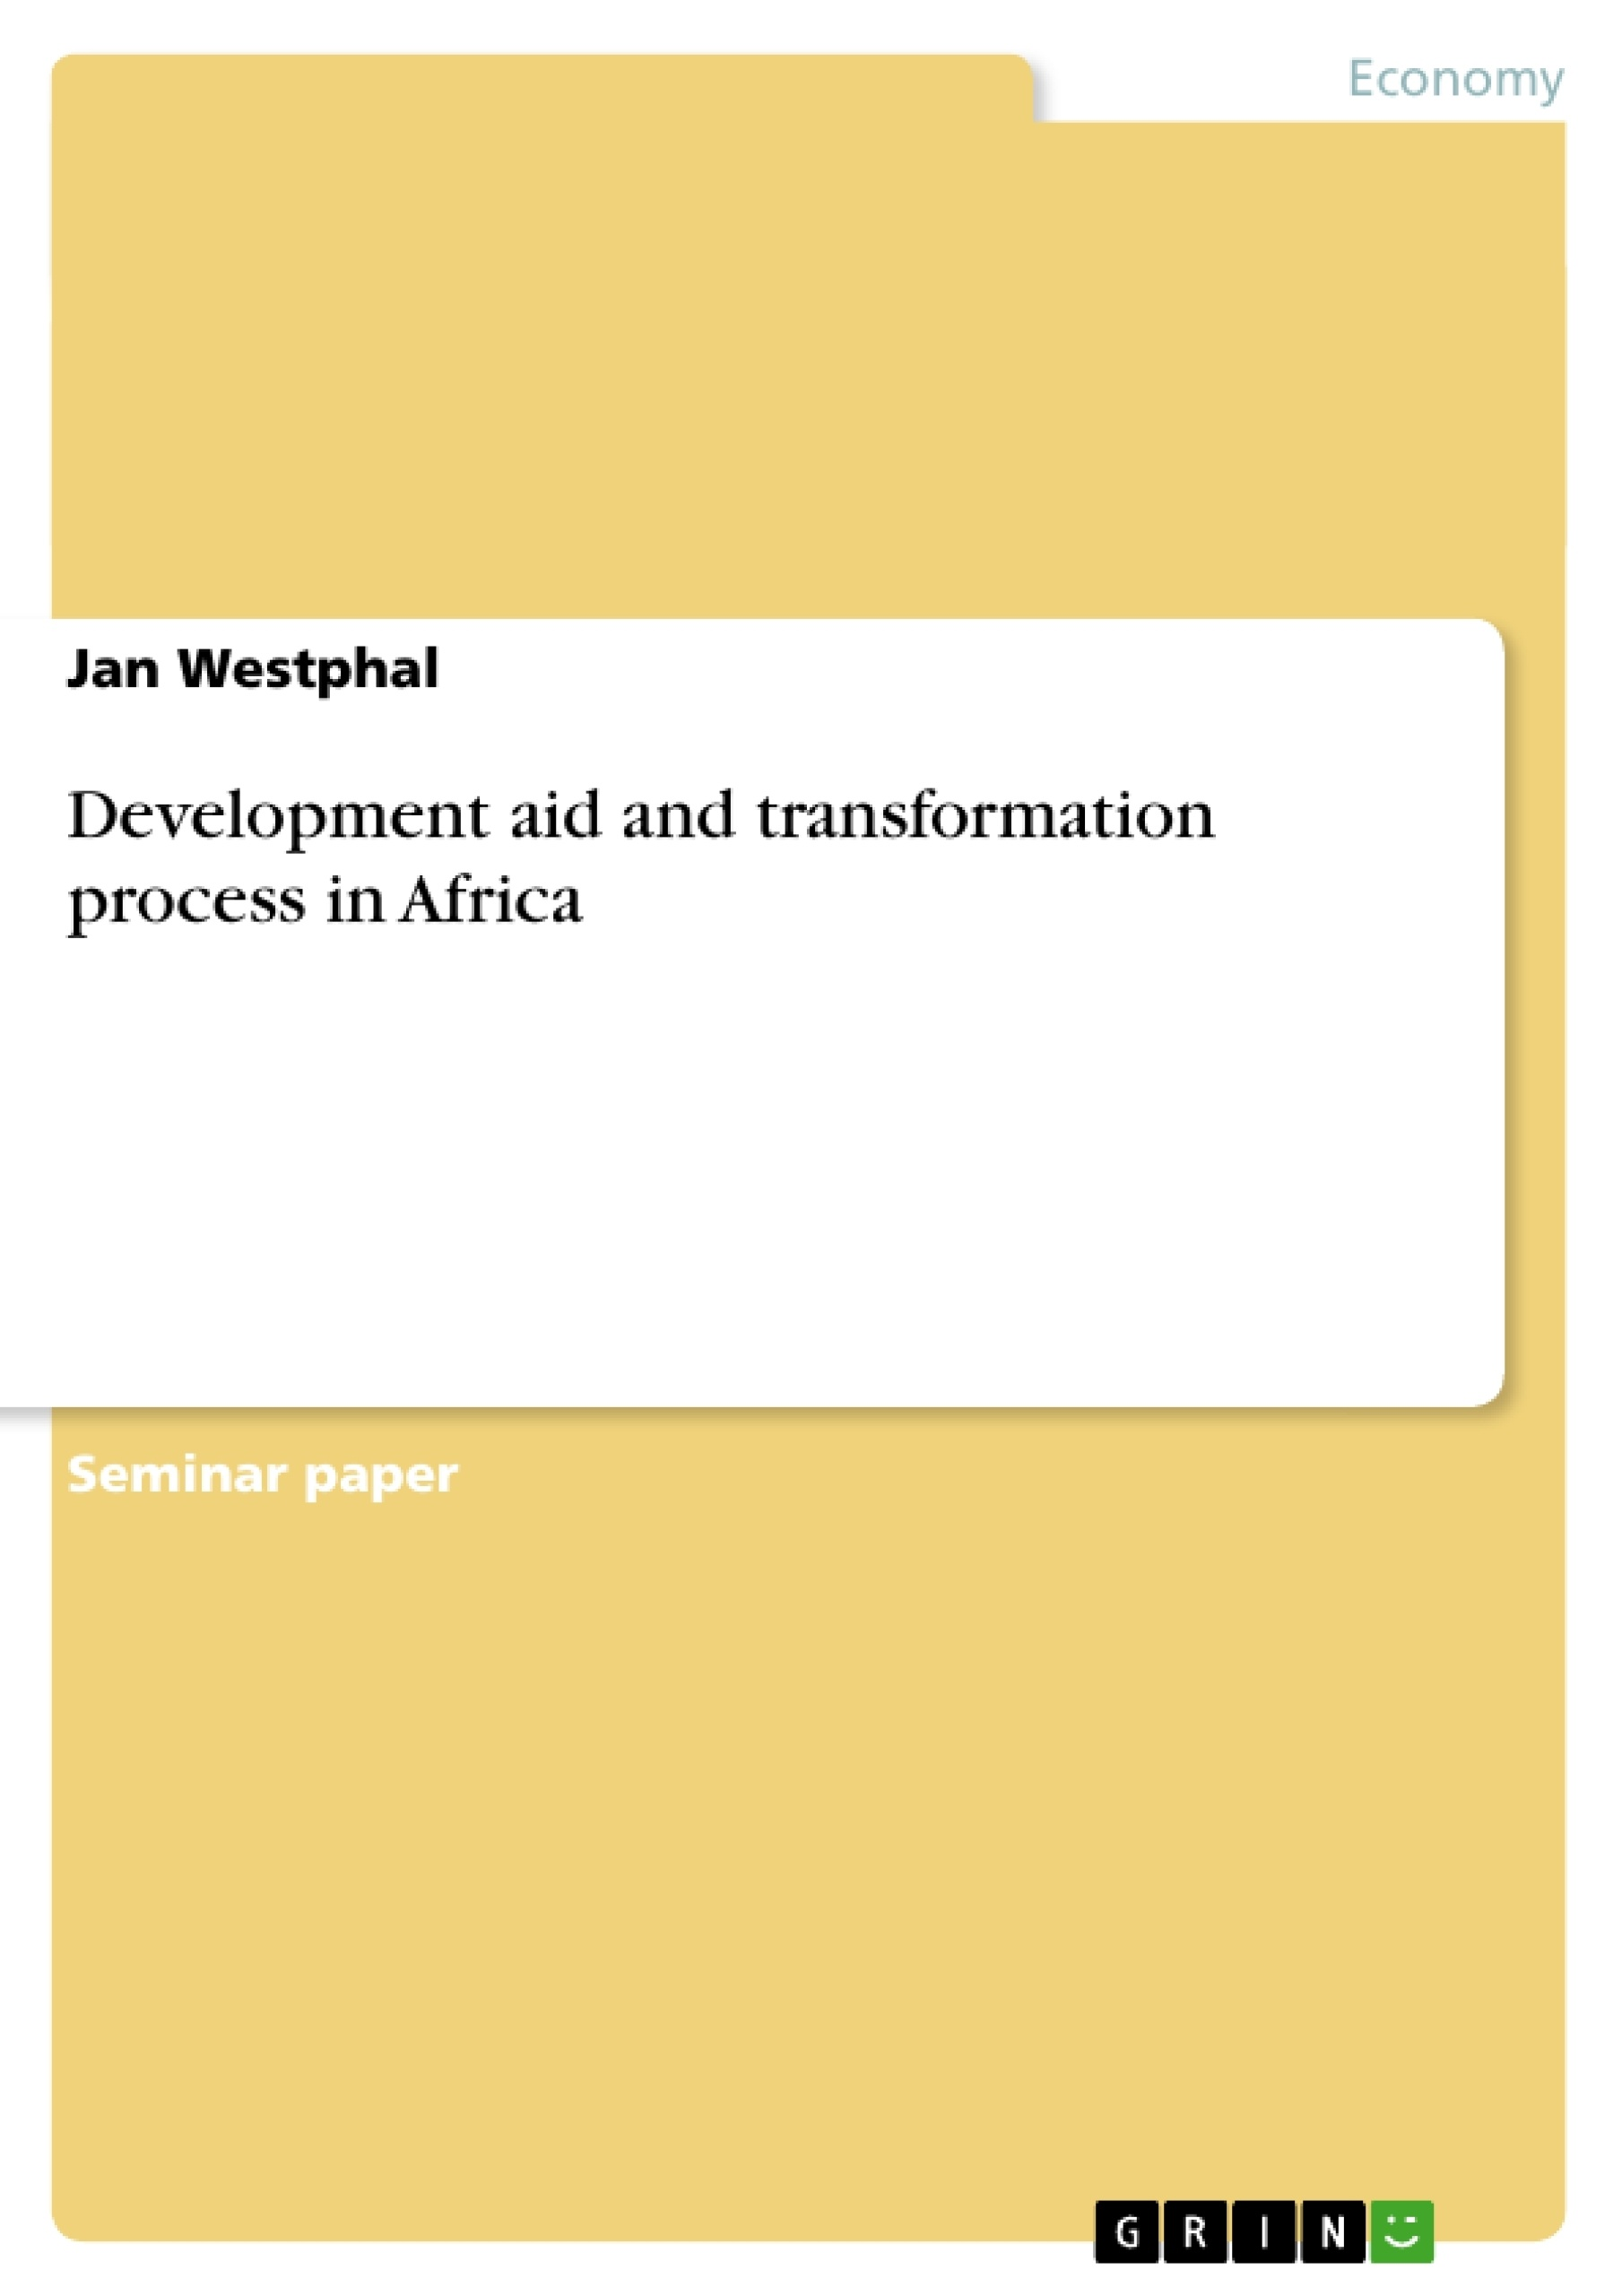 Title: Development aid and transformation process in Africa